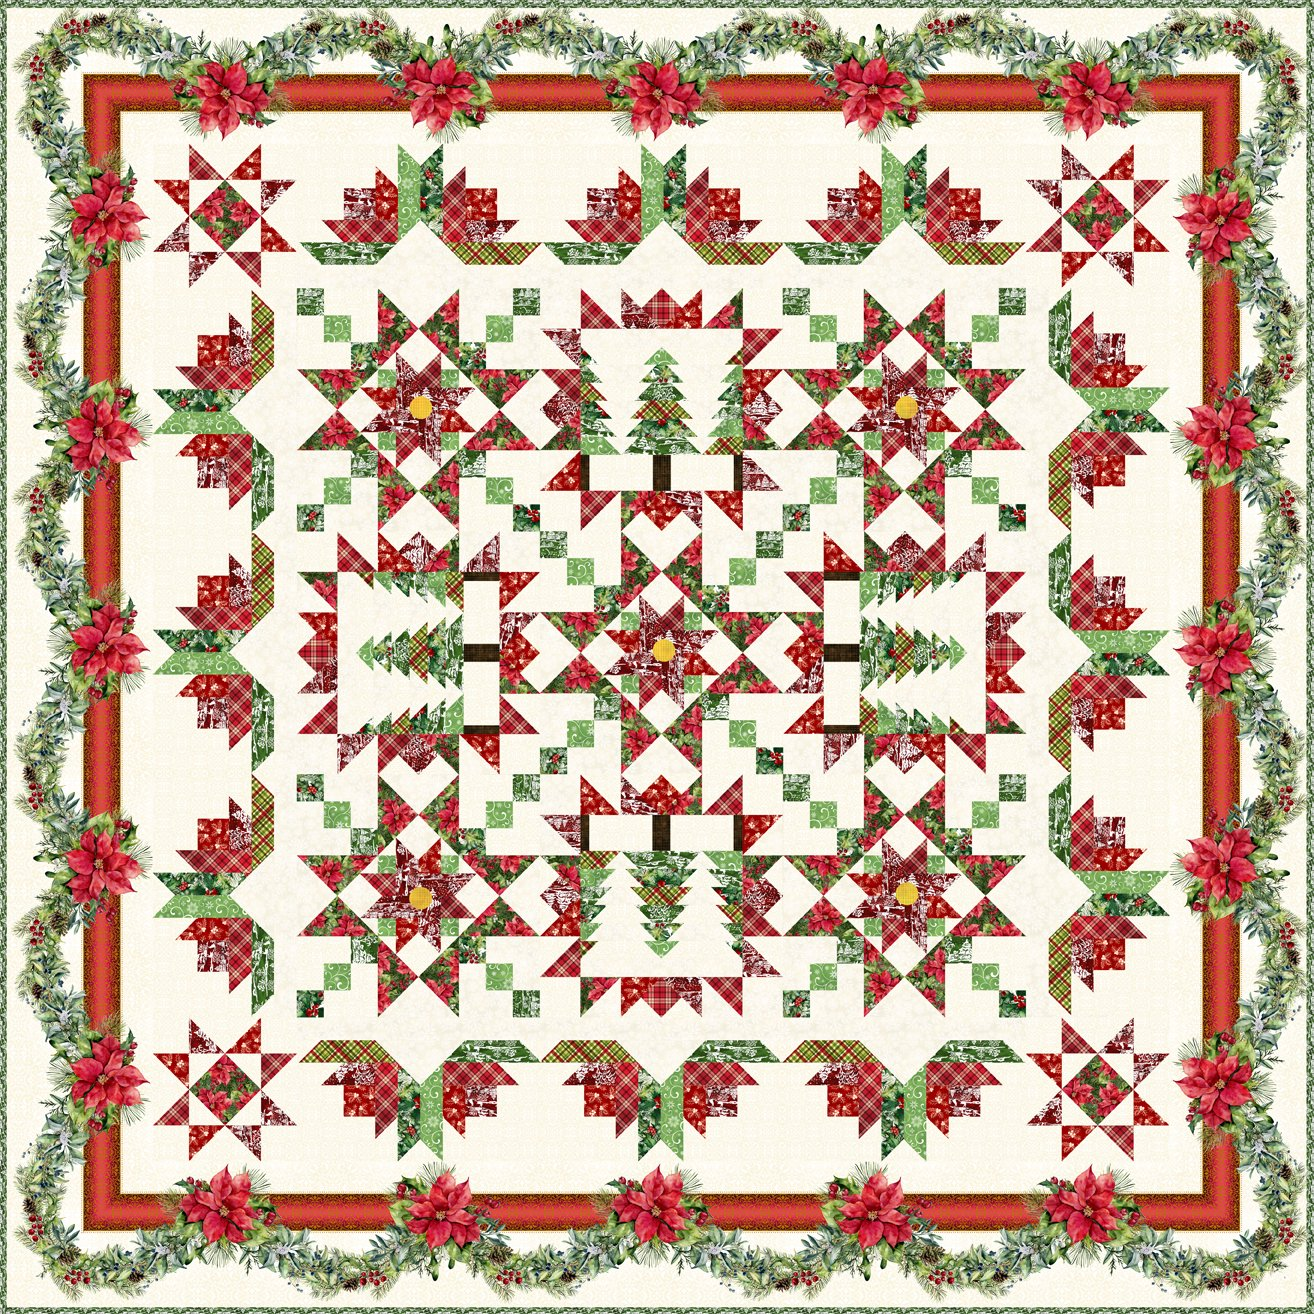 A Poinsettia Winter Quilt Book